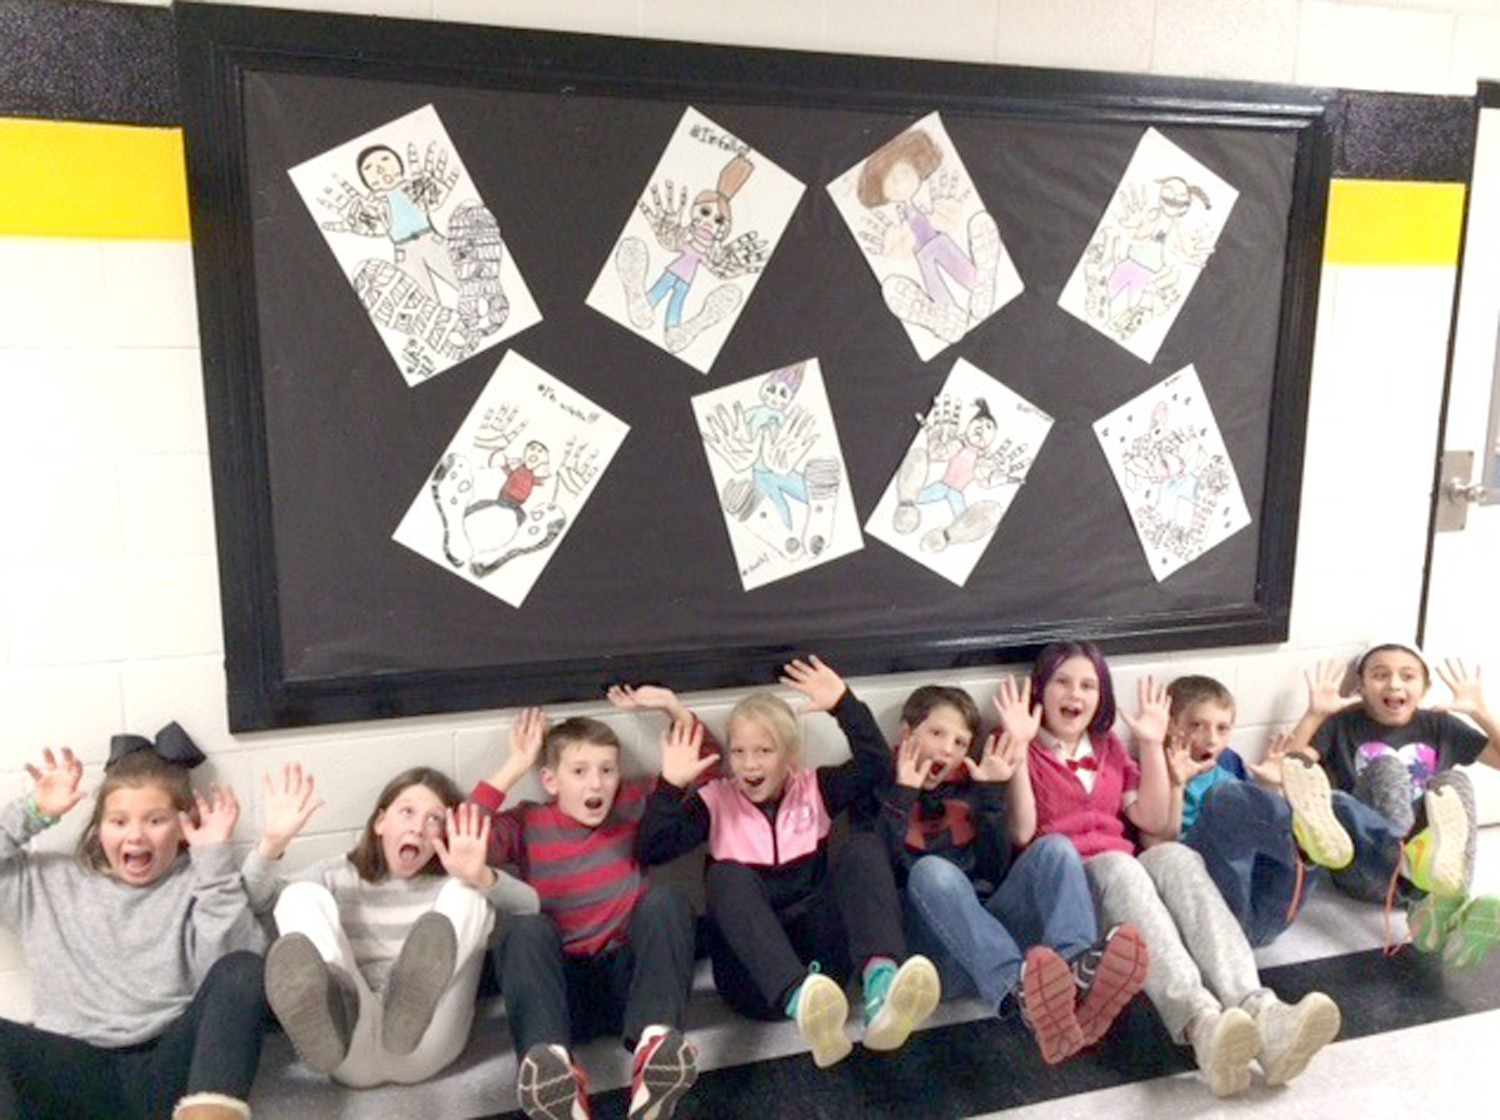 STUDENTS recently gathered under their distance perception project at Hopewell Elementary. Ashlyn Henry (from left) Emily Biller, Nick Shifley, Lyla Sims, Jeremiah Pugh, Lillian Flowers, Landon Williams, and Ava Adams participated in Art Smart enrichment projects at Hopewell Elementary. Students learned multiple techniques for sketching, distance perception, watercolor strokes, and tape resistance creations to express poetry.